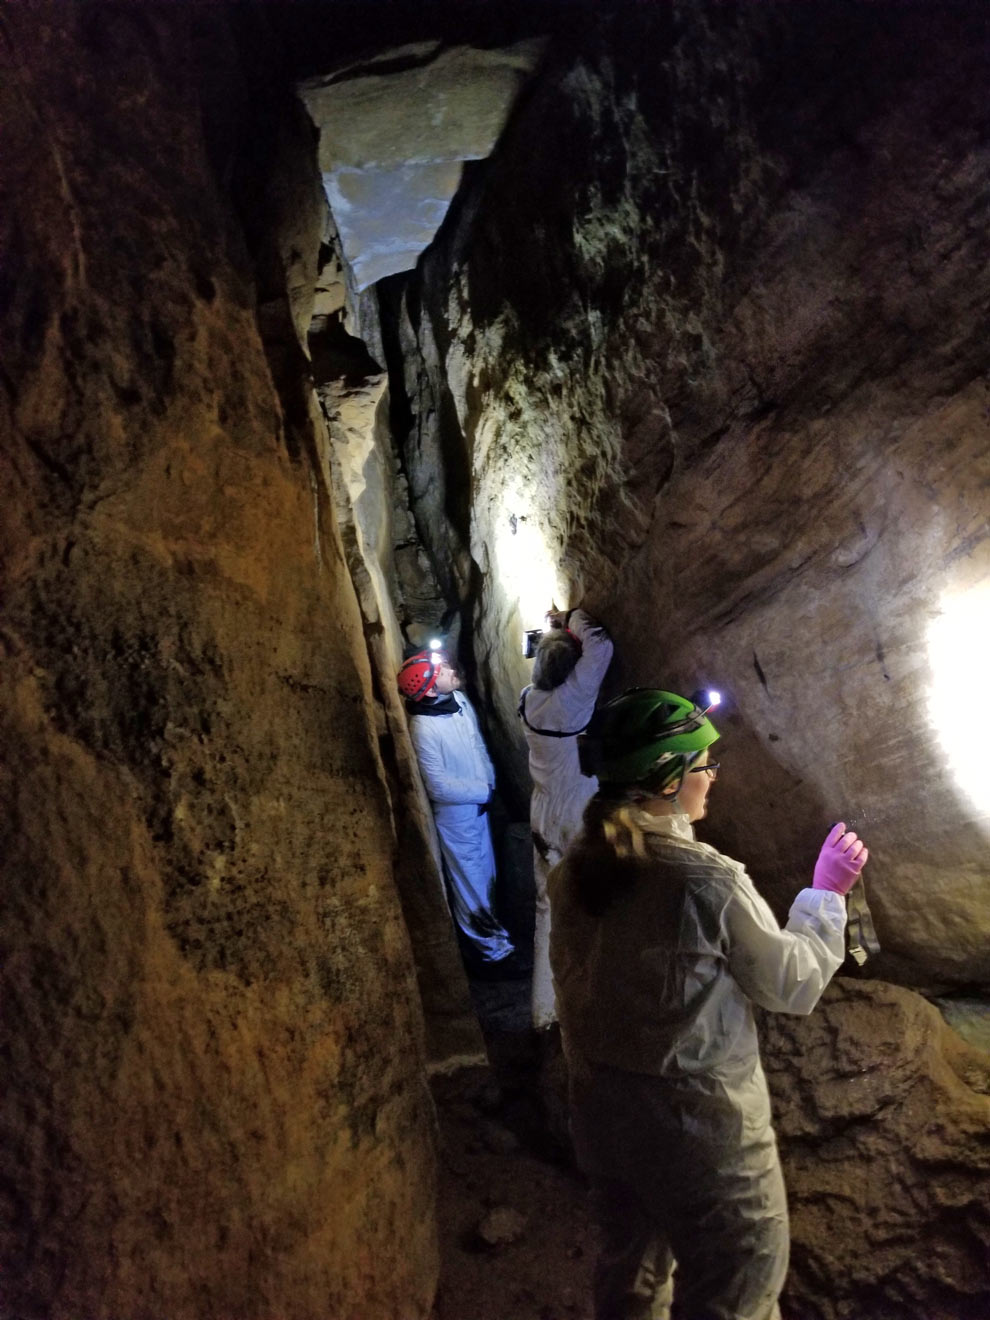 Biologists from ODNR inside a cave at Clear Creek on a search for bats